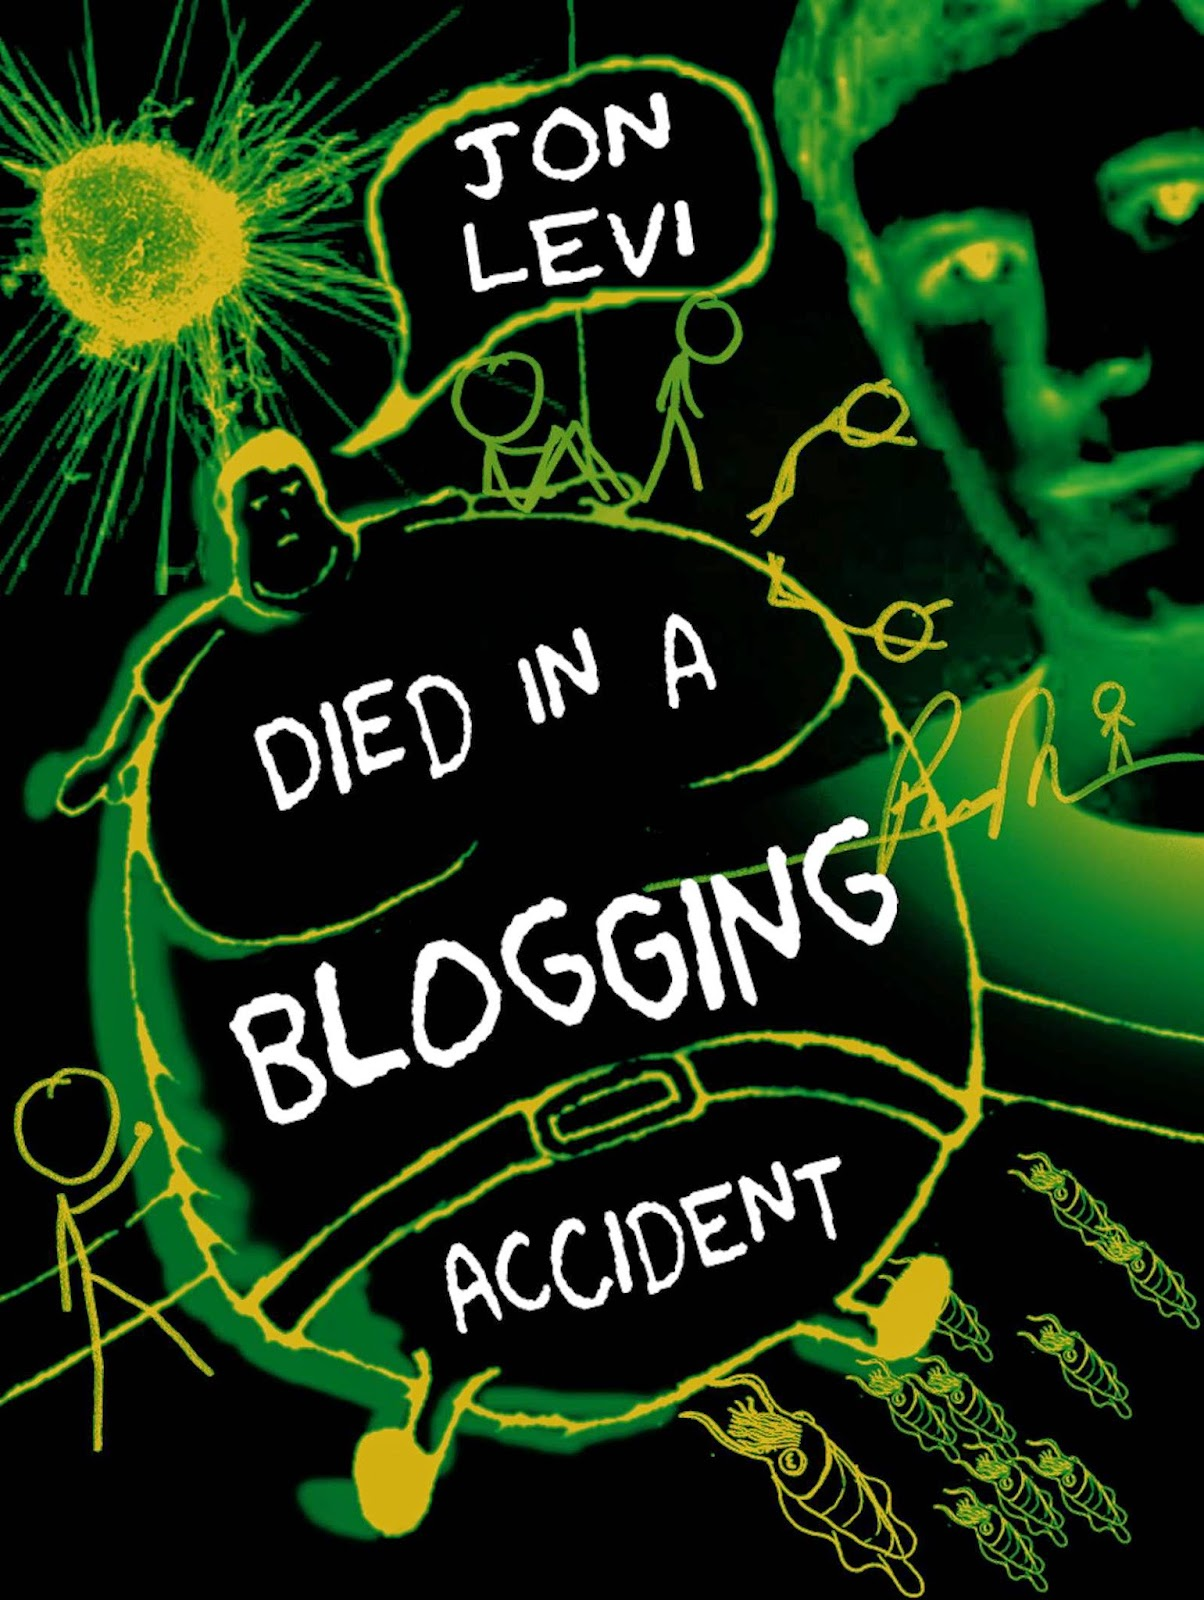 Died In A Blogging Accident by Jon Levi